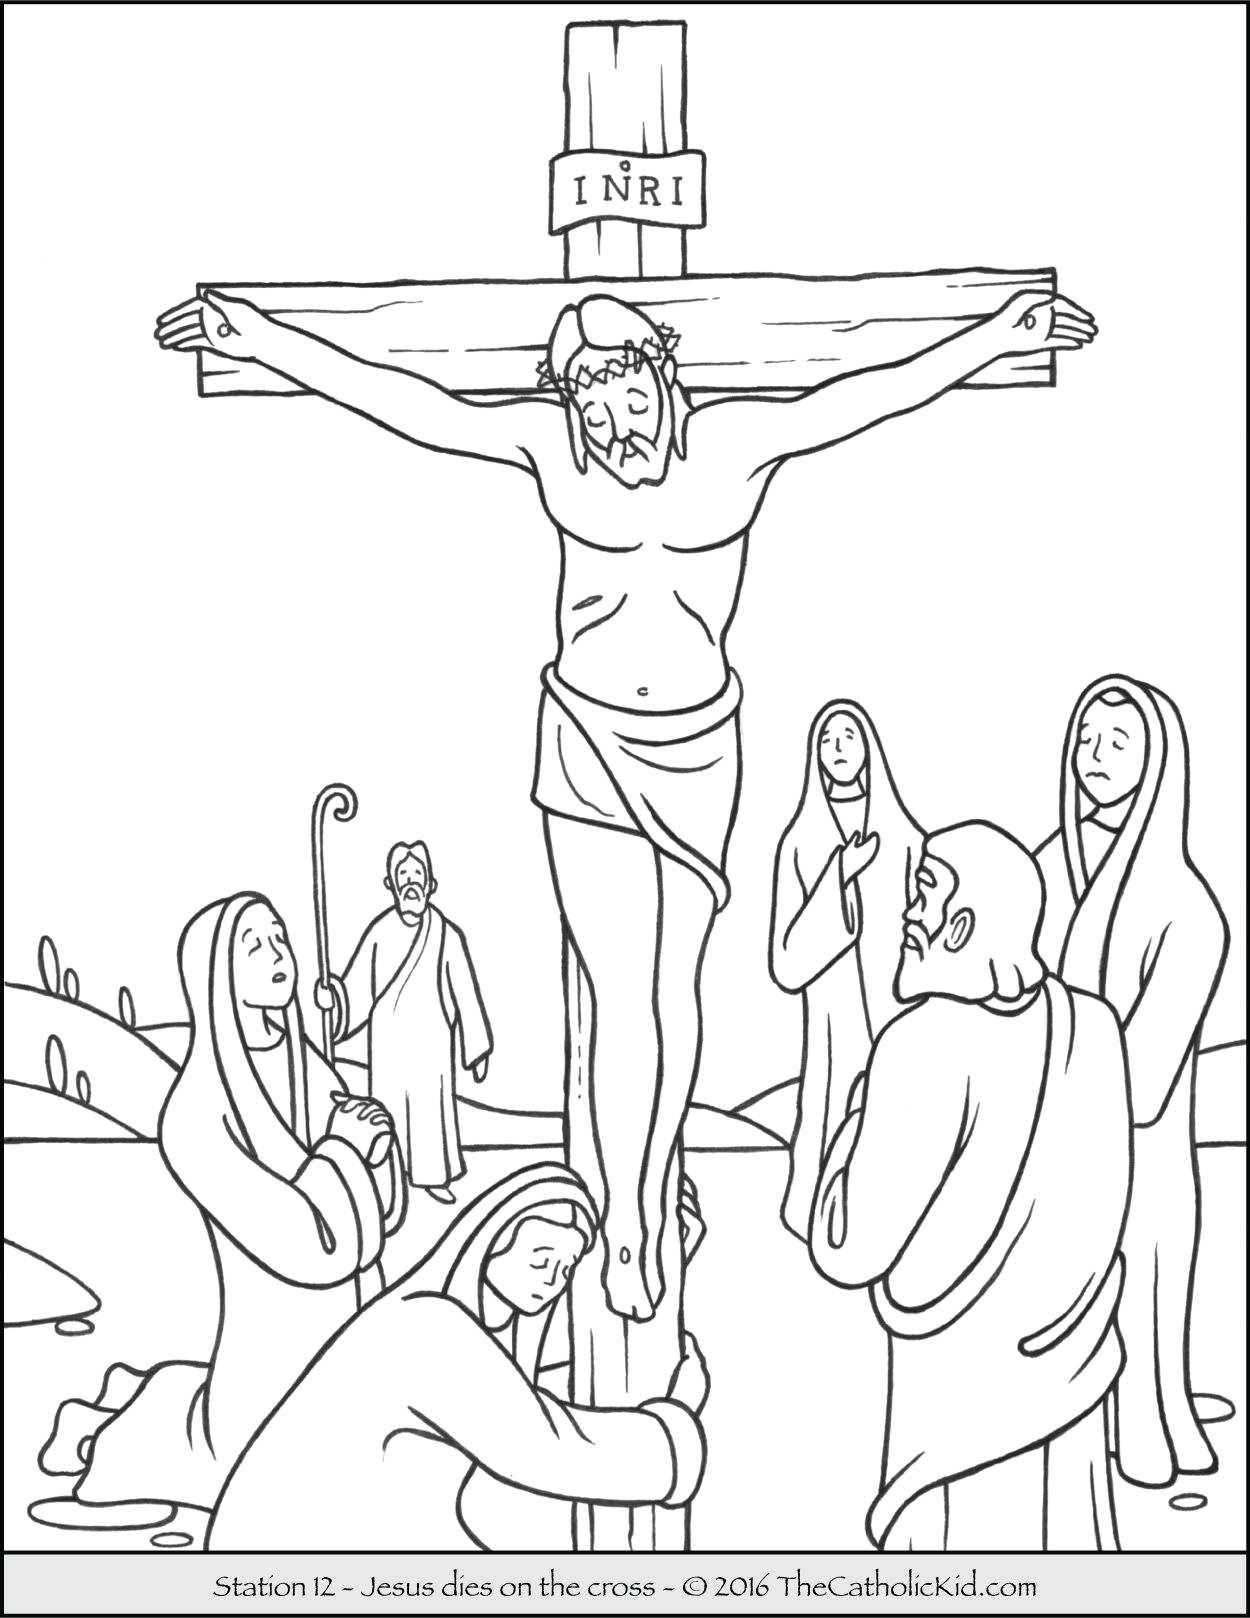 Jesus Died On the Cross Coloring Page Stations Of the Cross Coloring Pages the Catholic Kid